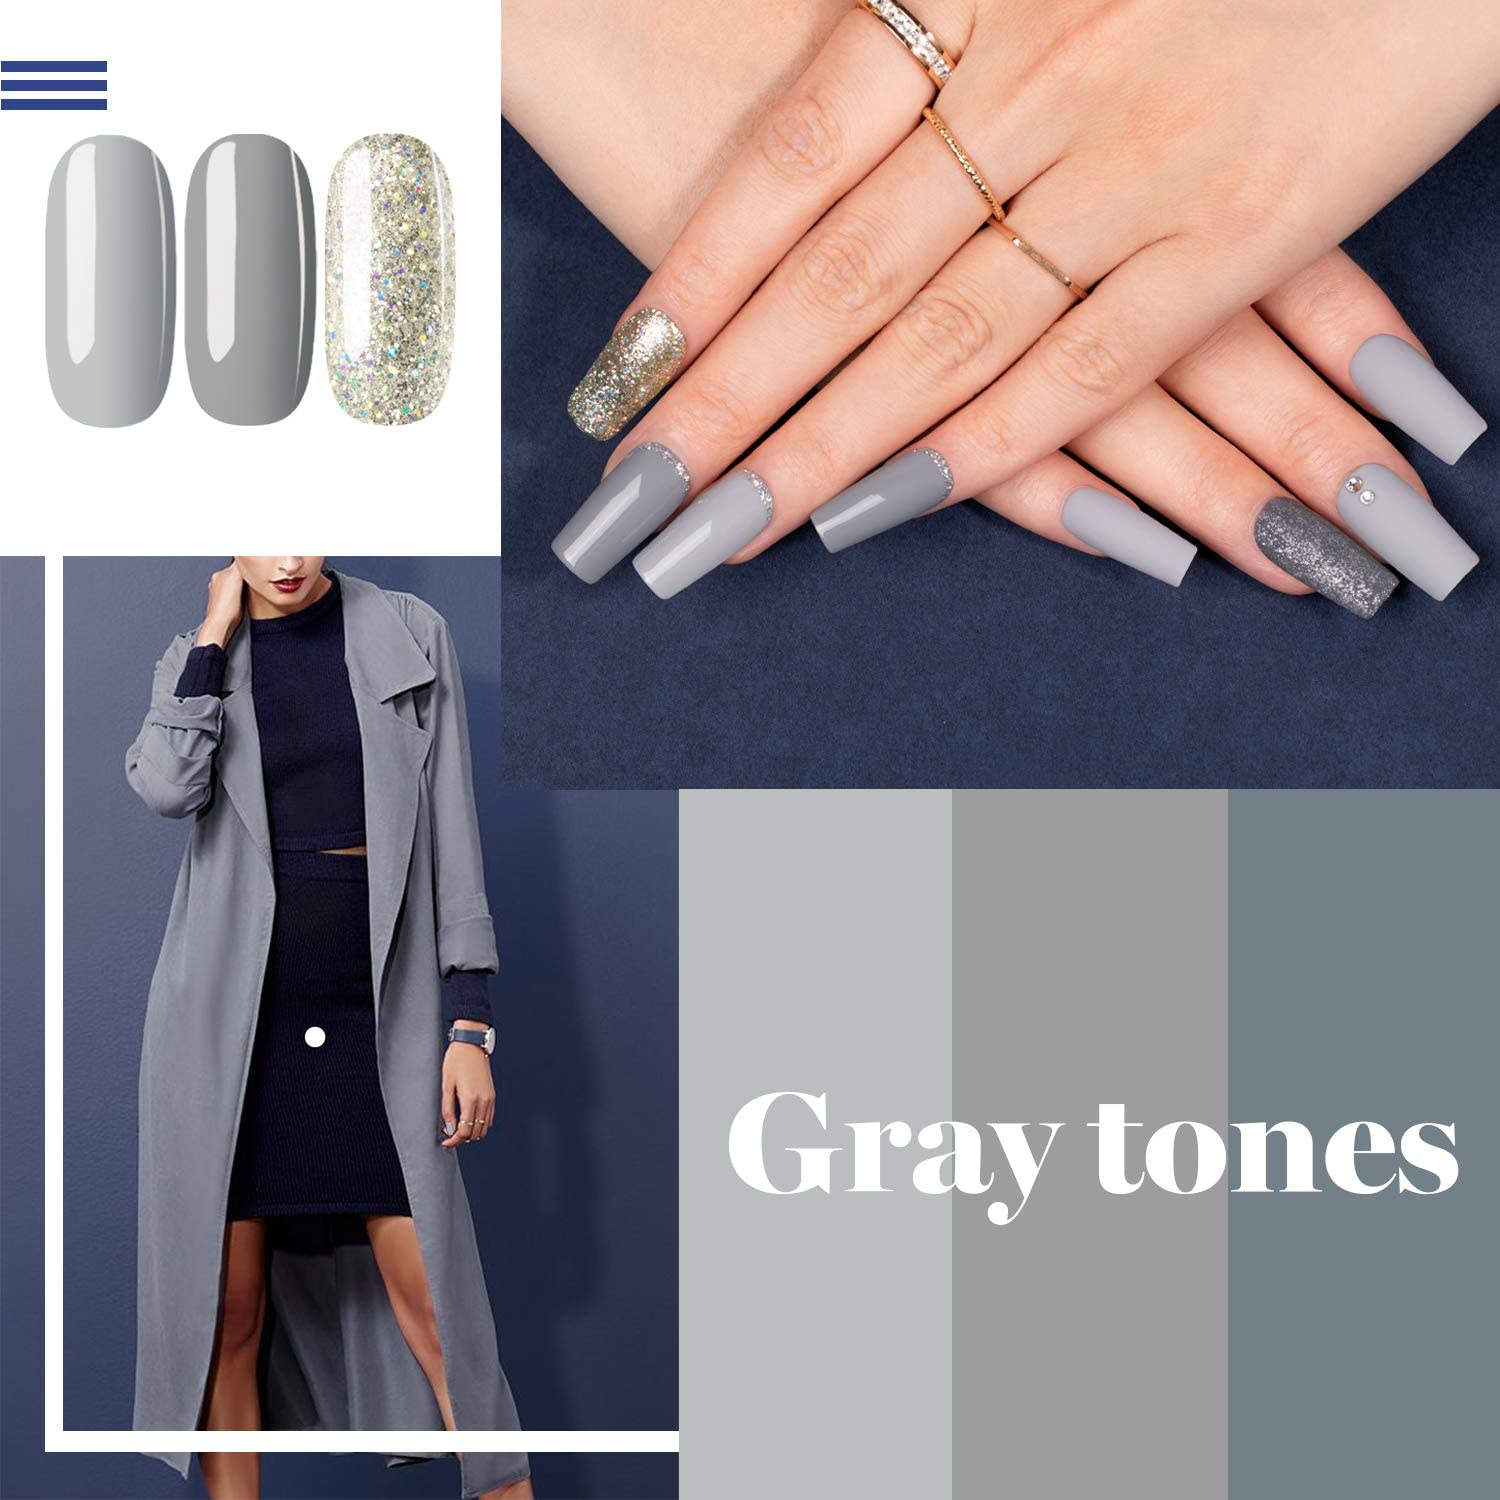 Beetles BRIDESMAID BEAUTY Classic Gel Nail Polish Set - Nude Gray Pink 6 Colors Gel Polish Kit Popular Nail Art Design Soak Off LED Lamp Nail Polish Gel Manicure Kit Holiday Git Set : Beauty